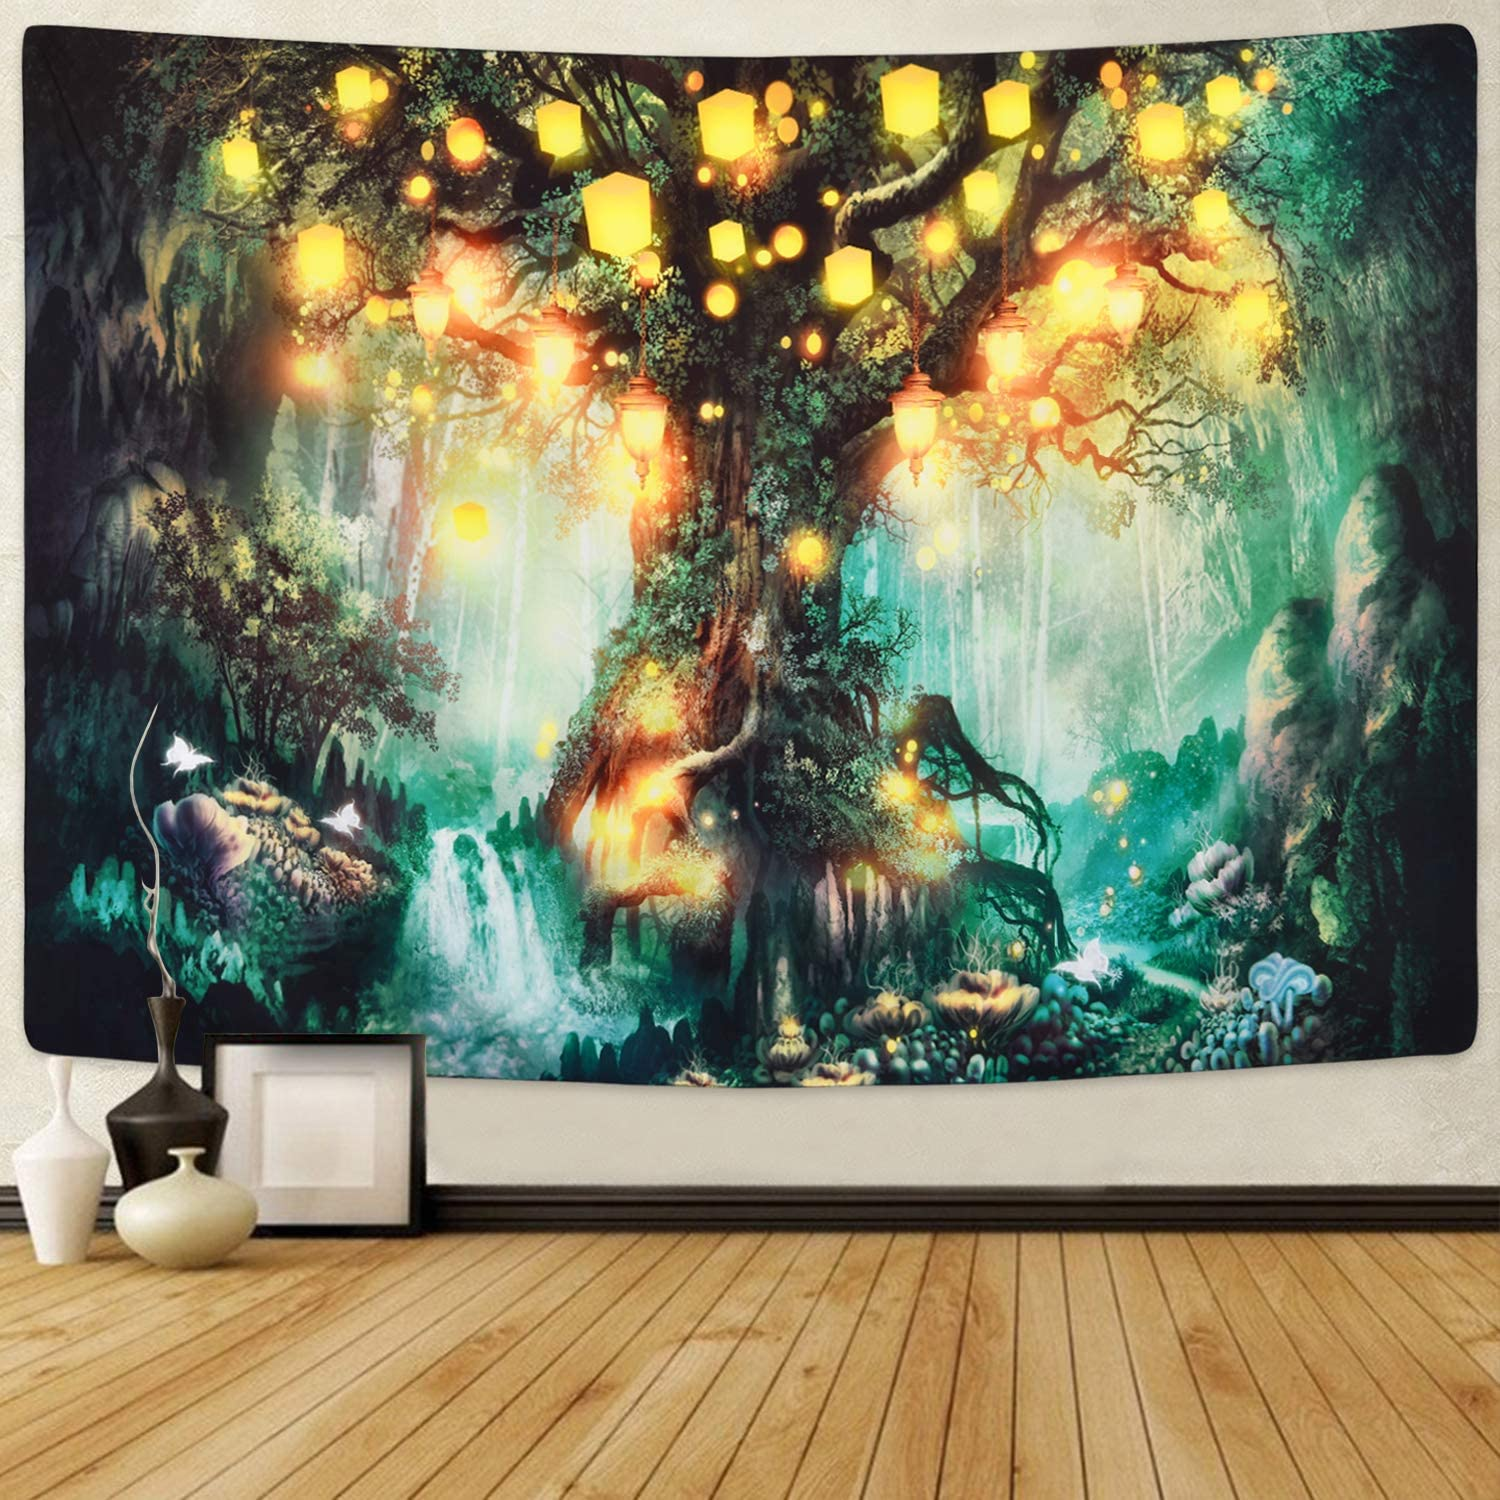 Sevenstars Forest Fairy Tales Tapestry Lantern Tapestry Waterfalls Under Tree of Life Tapestry Psychedelic Forest Tapestry Fantasy Wishing Tree Tapestries for Room (70.9ʺ x 92.5ʺ, Forest Fairy Tales)